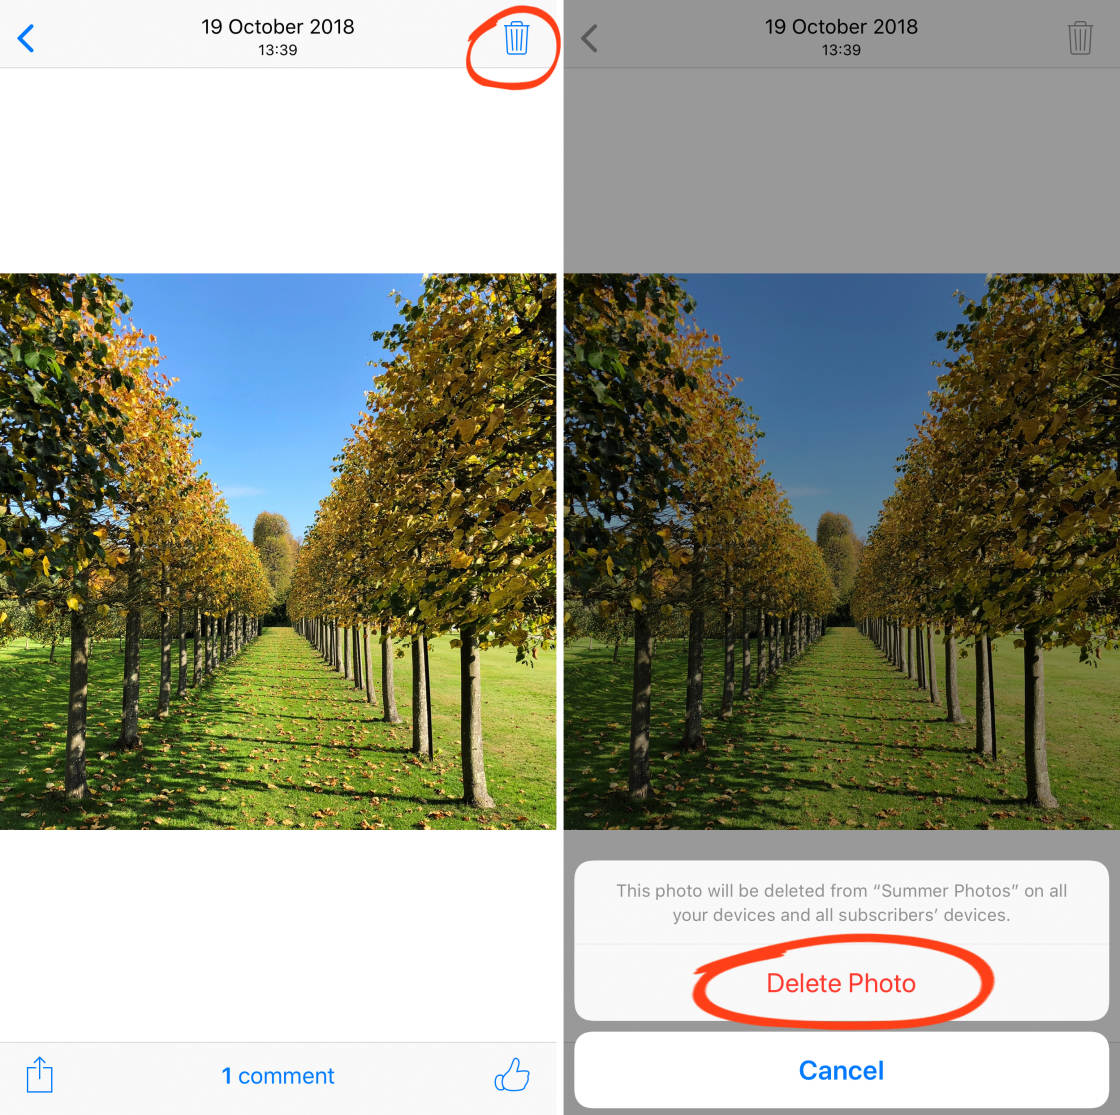 iCloud Photo Sharing: The Complete Guide To Sharing iPhone Photos